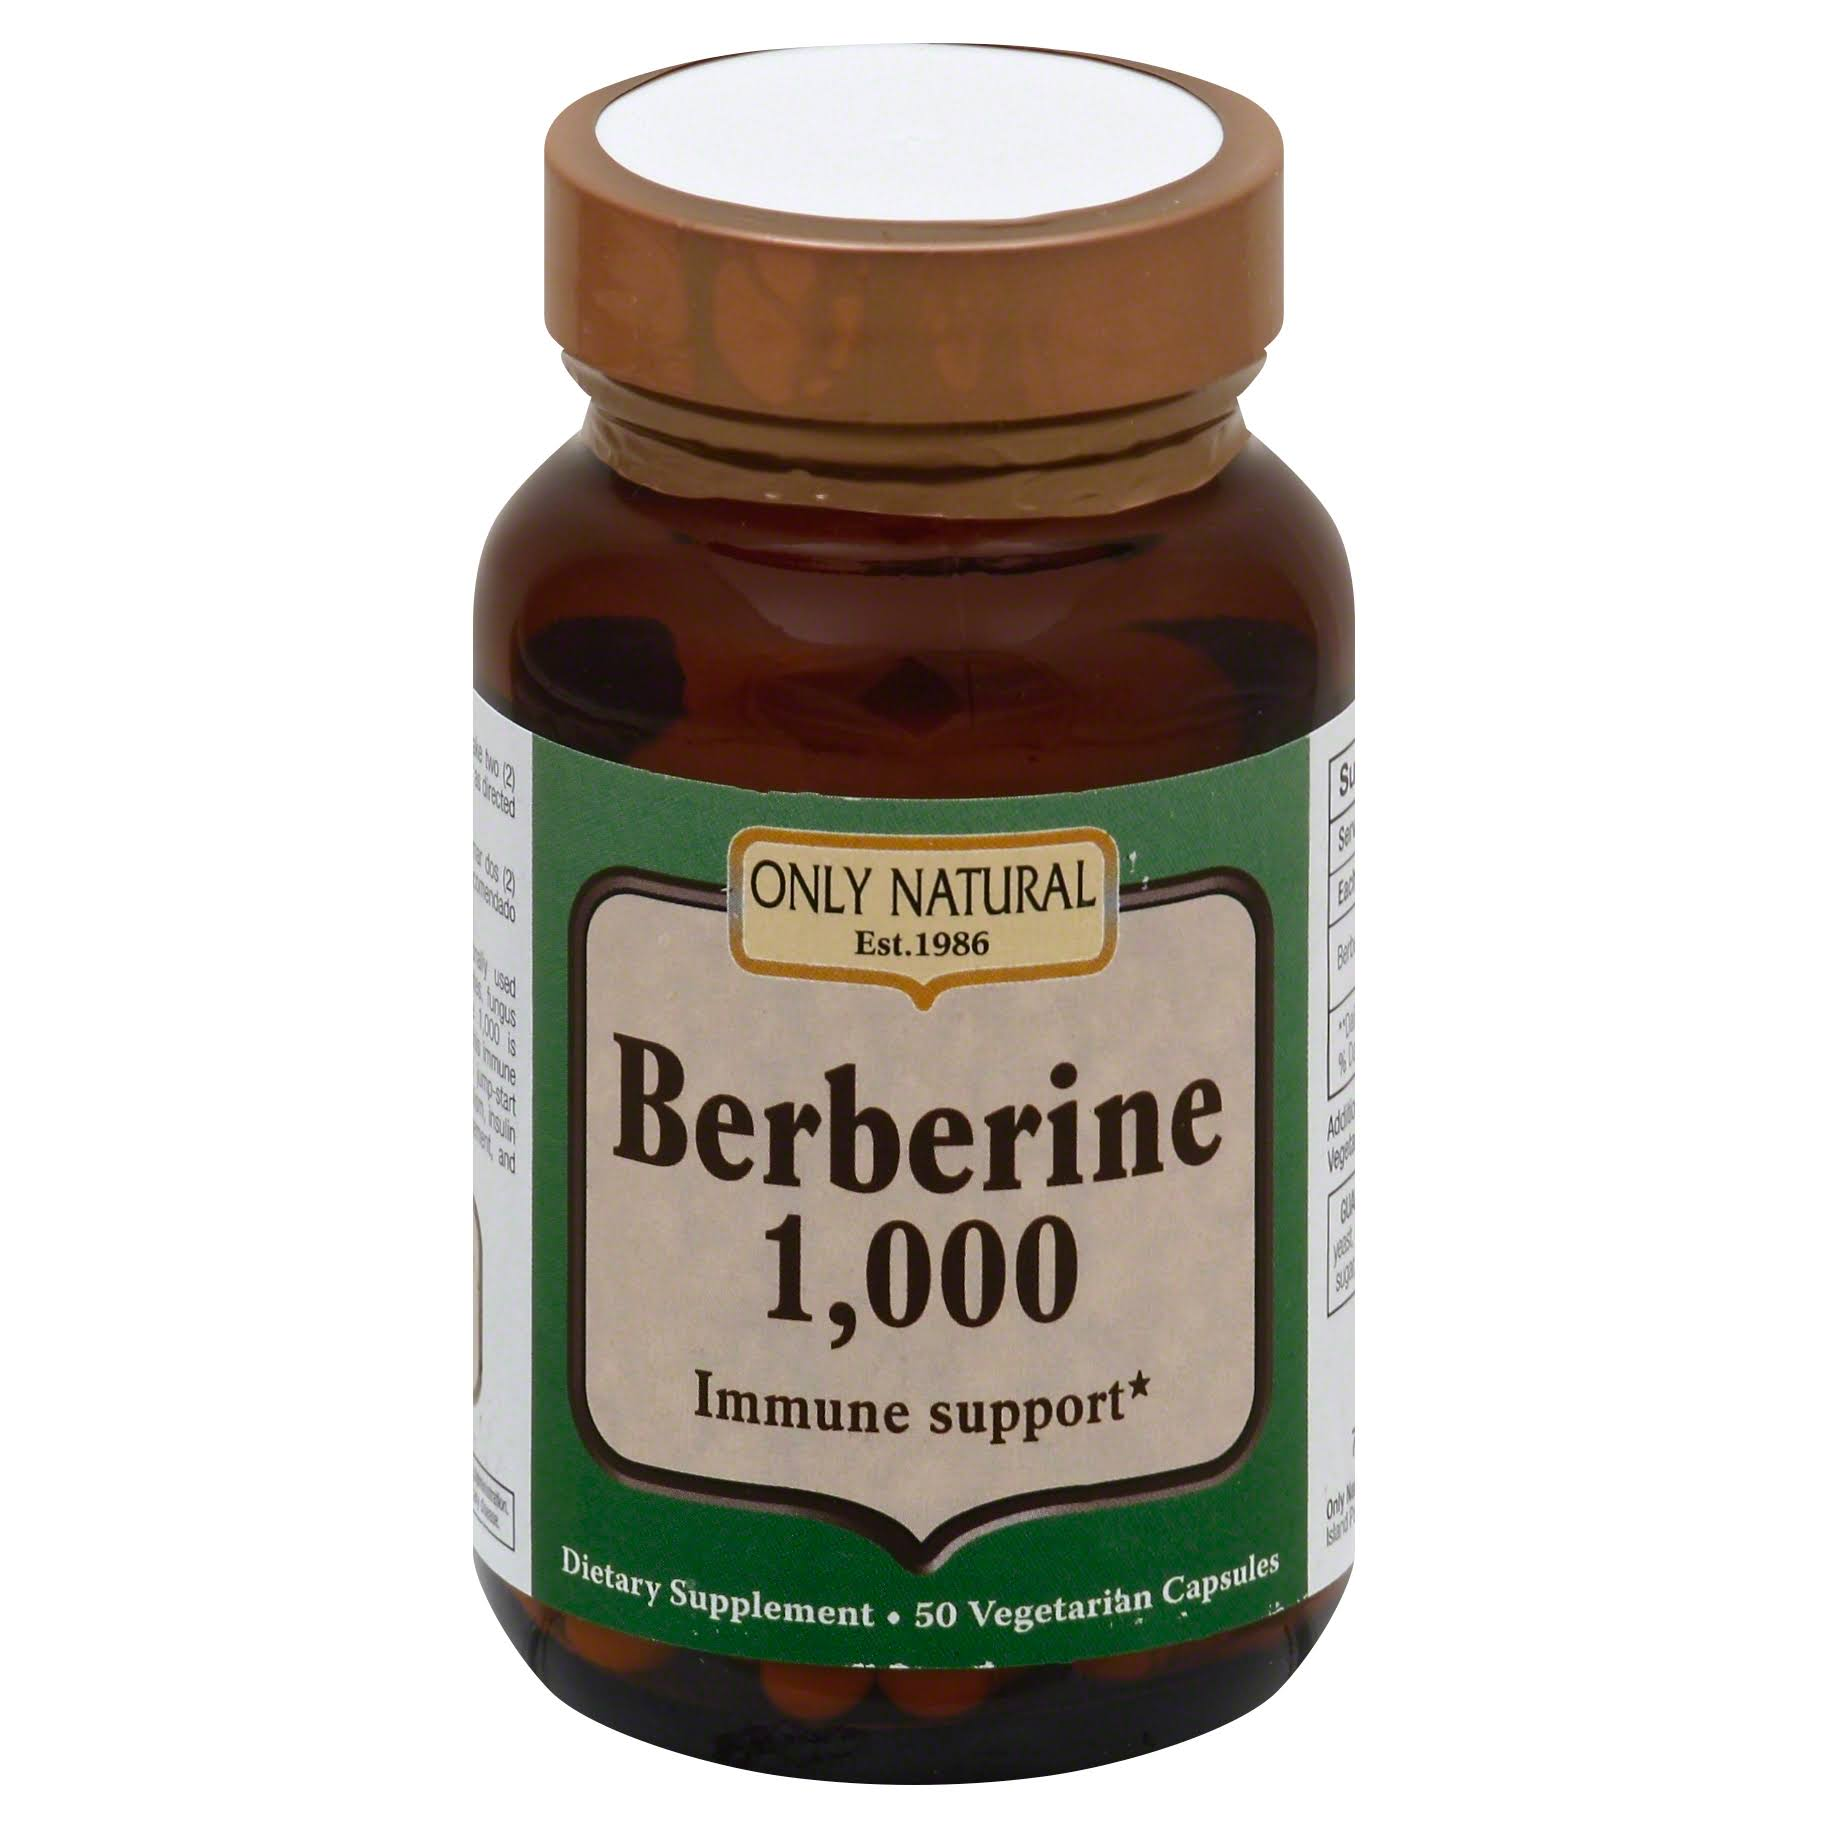 Only Natural Berberine 1000 Immune Support - 1000mg, 50 Vegetarian Capsules